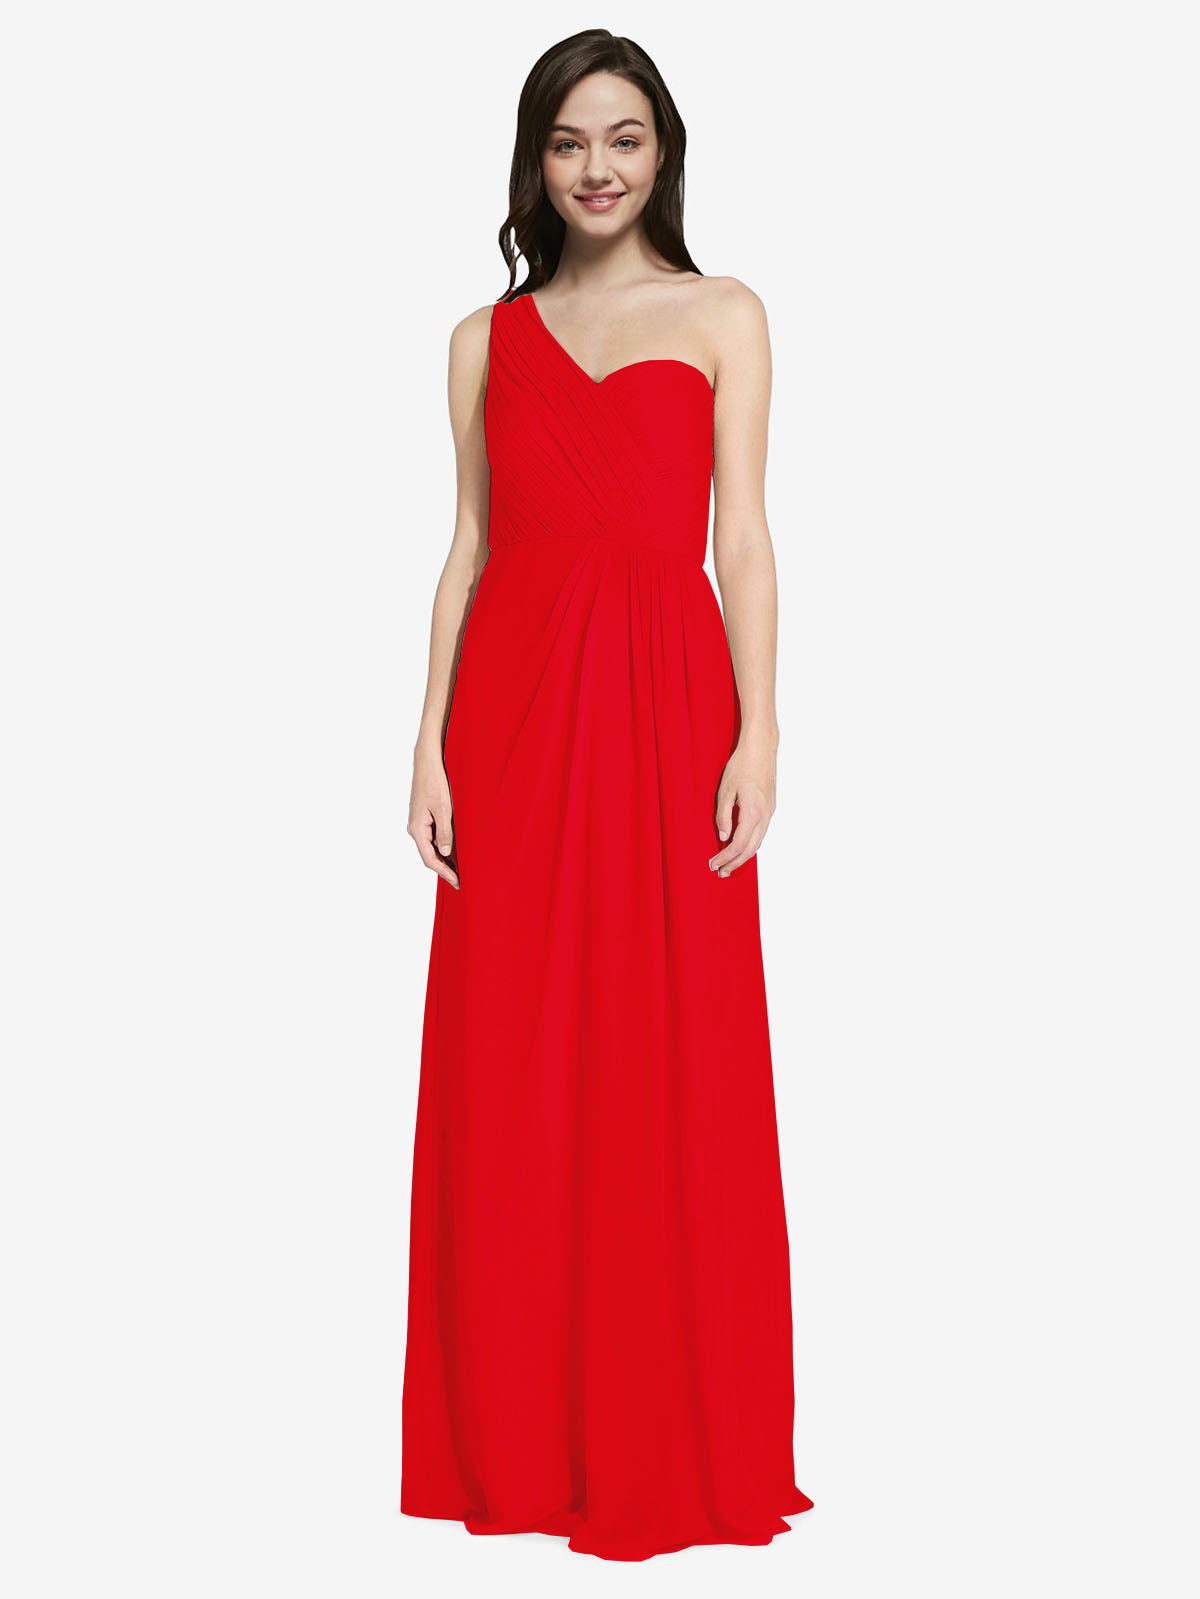 Long A-Line One Shoulder Sweetheart Sleeveless Red Chiffon Bridesmaid Dress Ida